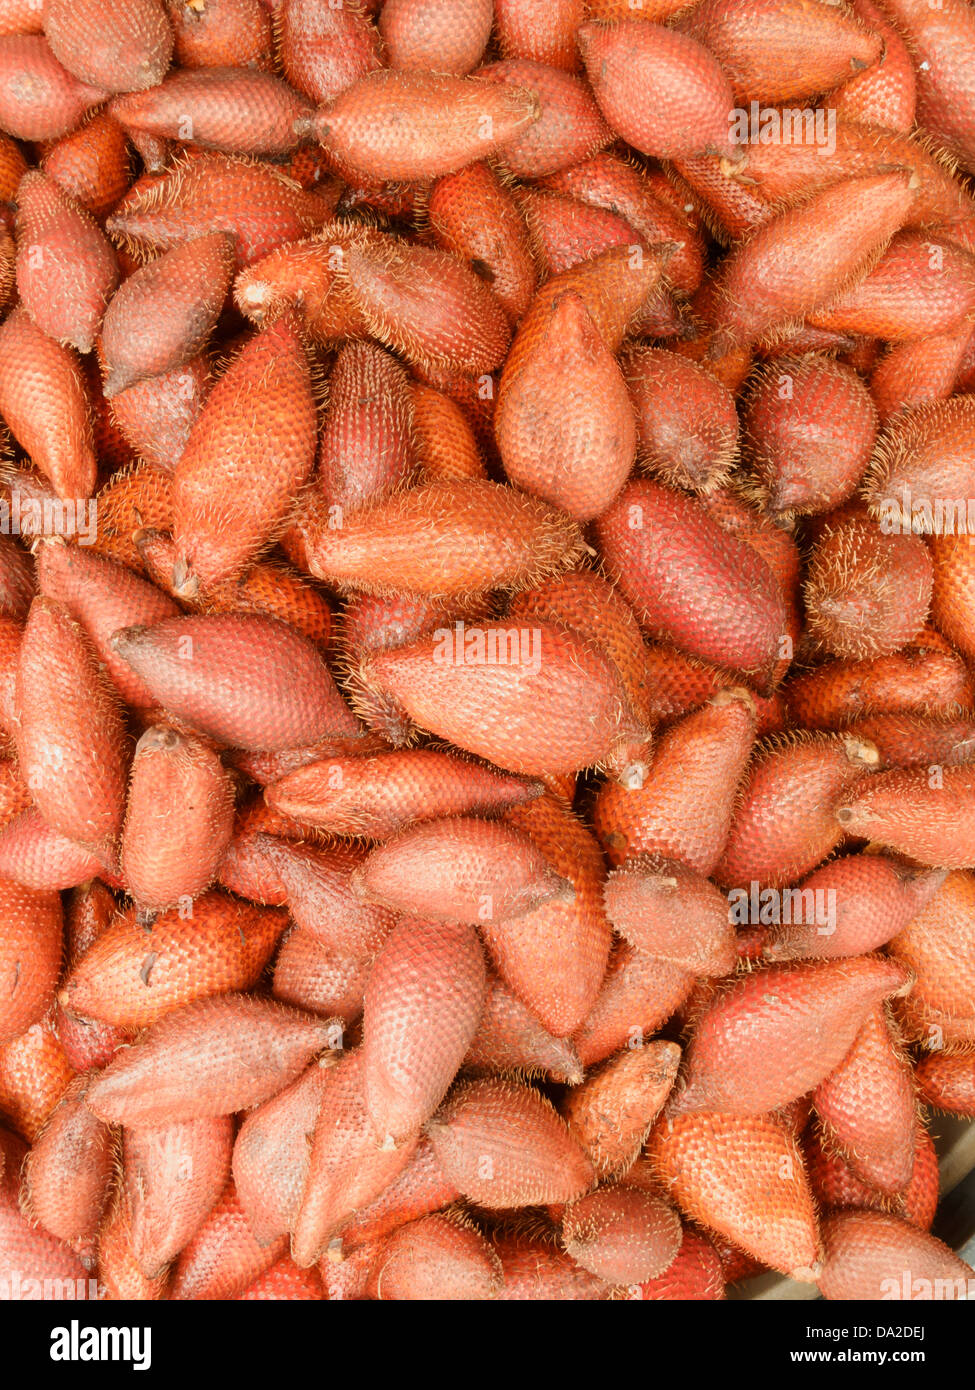 Salak, tropical sweet fruit in thai local market. The scientific name : Salacca zalacca is a species of palm tree. - Stock Image